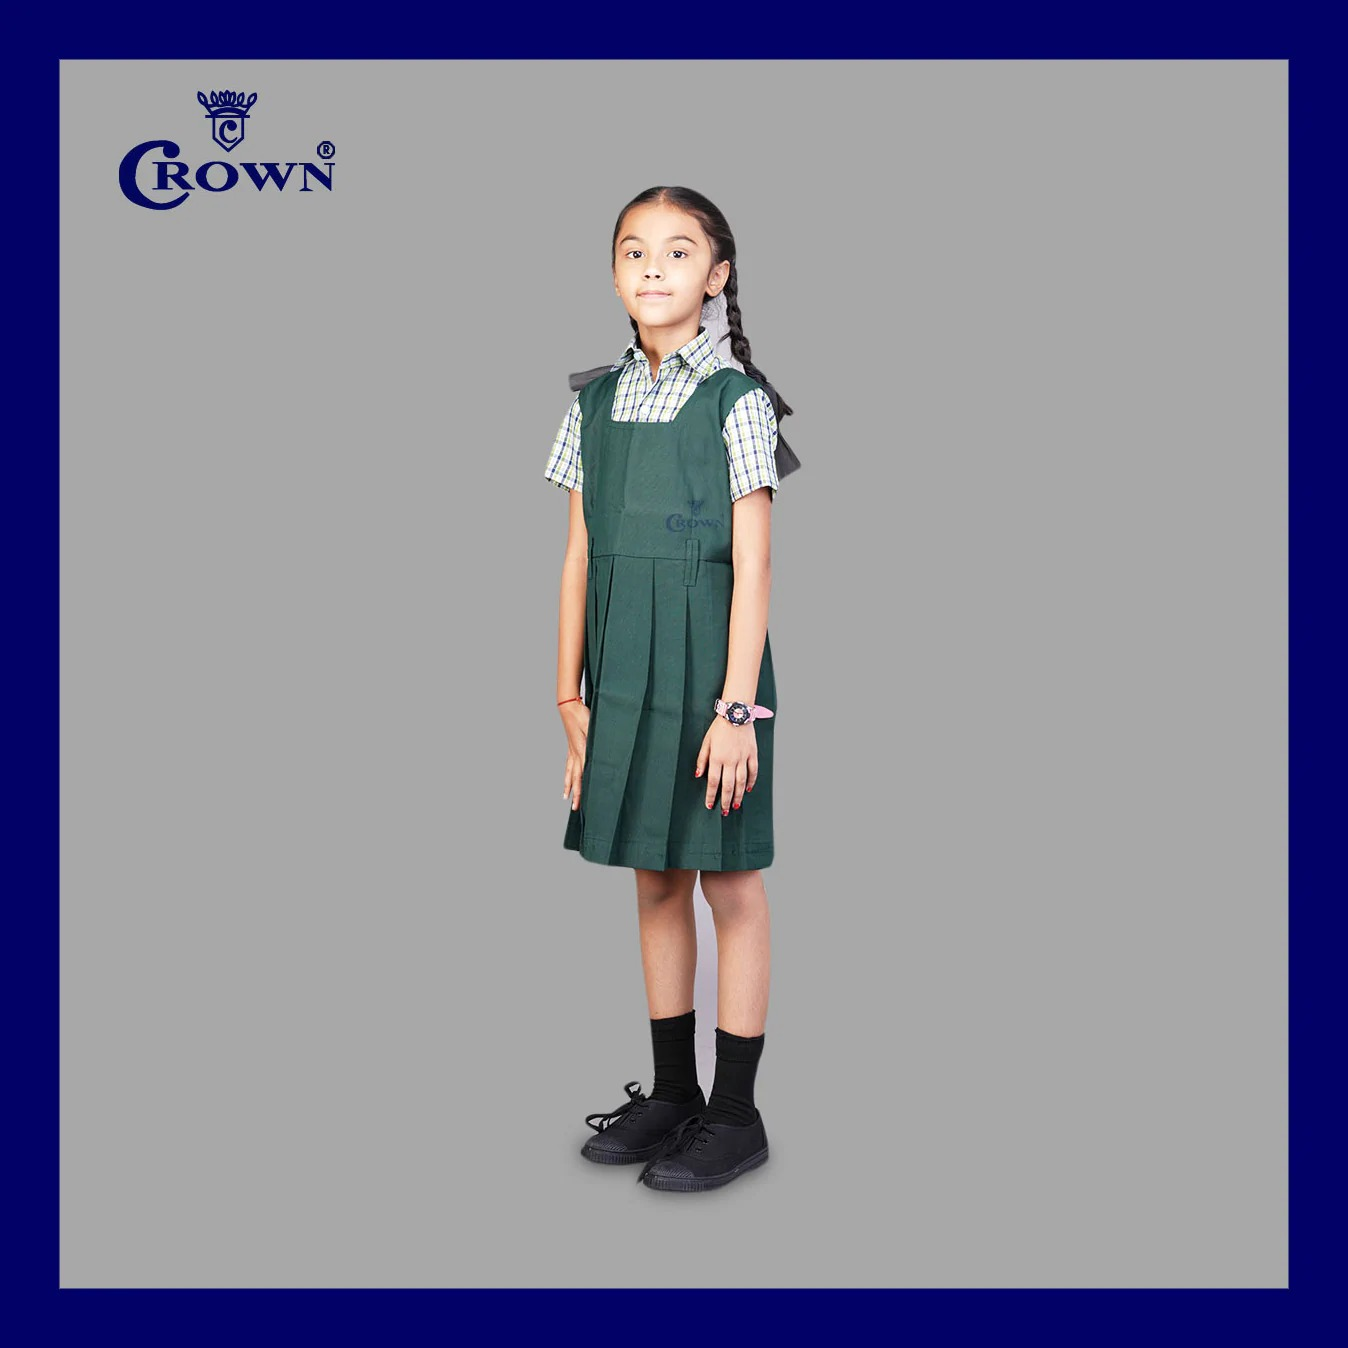 Crown TN Govt 1 - 5thStd Bottle Green Colour Pinafore (7-8 Years)